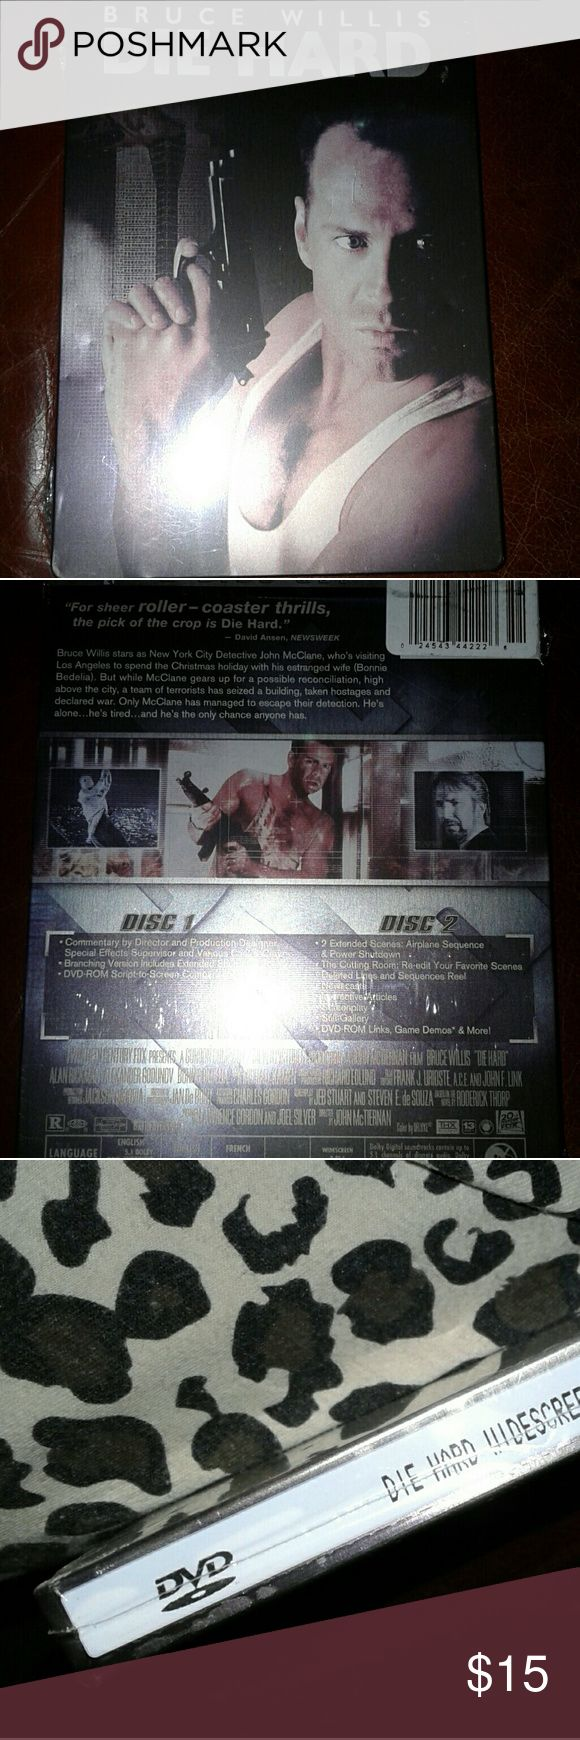 """DIE HARD"" DVD MOVIE TIN BOX UNOPENED ""DIE HARD"" BRUCE WILLIS, 1ST of the series, in a black & white effect covershot TIN BOX COLLECTIBLE, PROTECTIVE, unopened still have original factory sealed cello plastic wrapper & security tape, 2 disc set. Disc 1- Comentary, Special effects,  Disc 2- extended scenes, favorite scenes, deleted scenes& Sequence Reels Still Gallery Dvd rom link to active games, On screneplay DIE HARD DVD 2 DISC TIN BOX COLLECTIBLE Other"